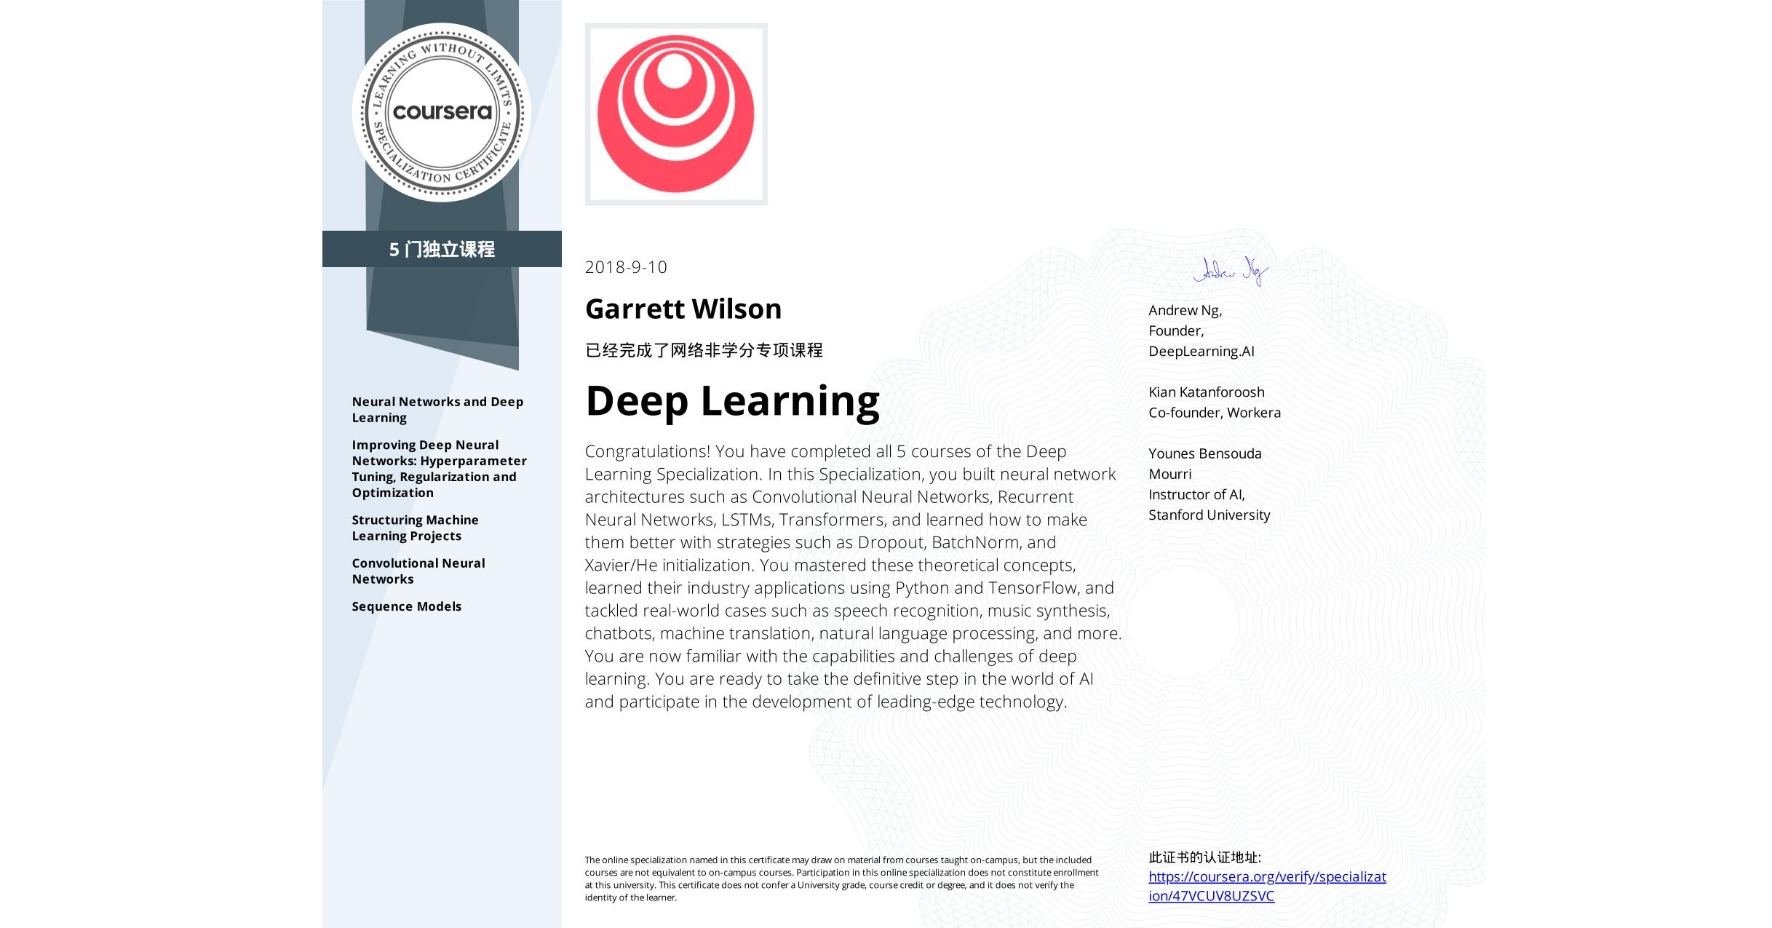 View certificate for Garrett Wilson, Deep Learning, offered through Coursera. Congratulations! You have completed all 5 courses of the Deep Learning Specialization.  In this Specialization, you built neural network architectures such as Convolutional Neural Networks, Recurrent Neural Networks, LSTMs, Transformers, and learned how to make them better with strategies such as Dropout, BatchNorm, and Xavier/He initialization. You mastered these theoretical concepts, learned their industry applications using Python and TensorFlow, and tackled real-world cases such as speech recognition, music synthesis, chatbots, machine translation, natural language processing, and more.  You are now familiar with the capabilities and challenges of deep learning. You are ready to take the definitive step in the world of AI and participate in the development of leading-edge technology.